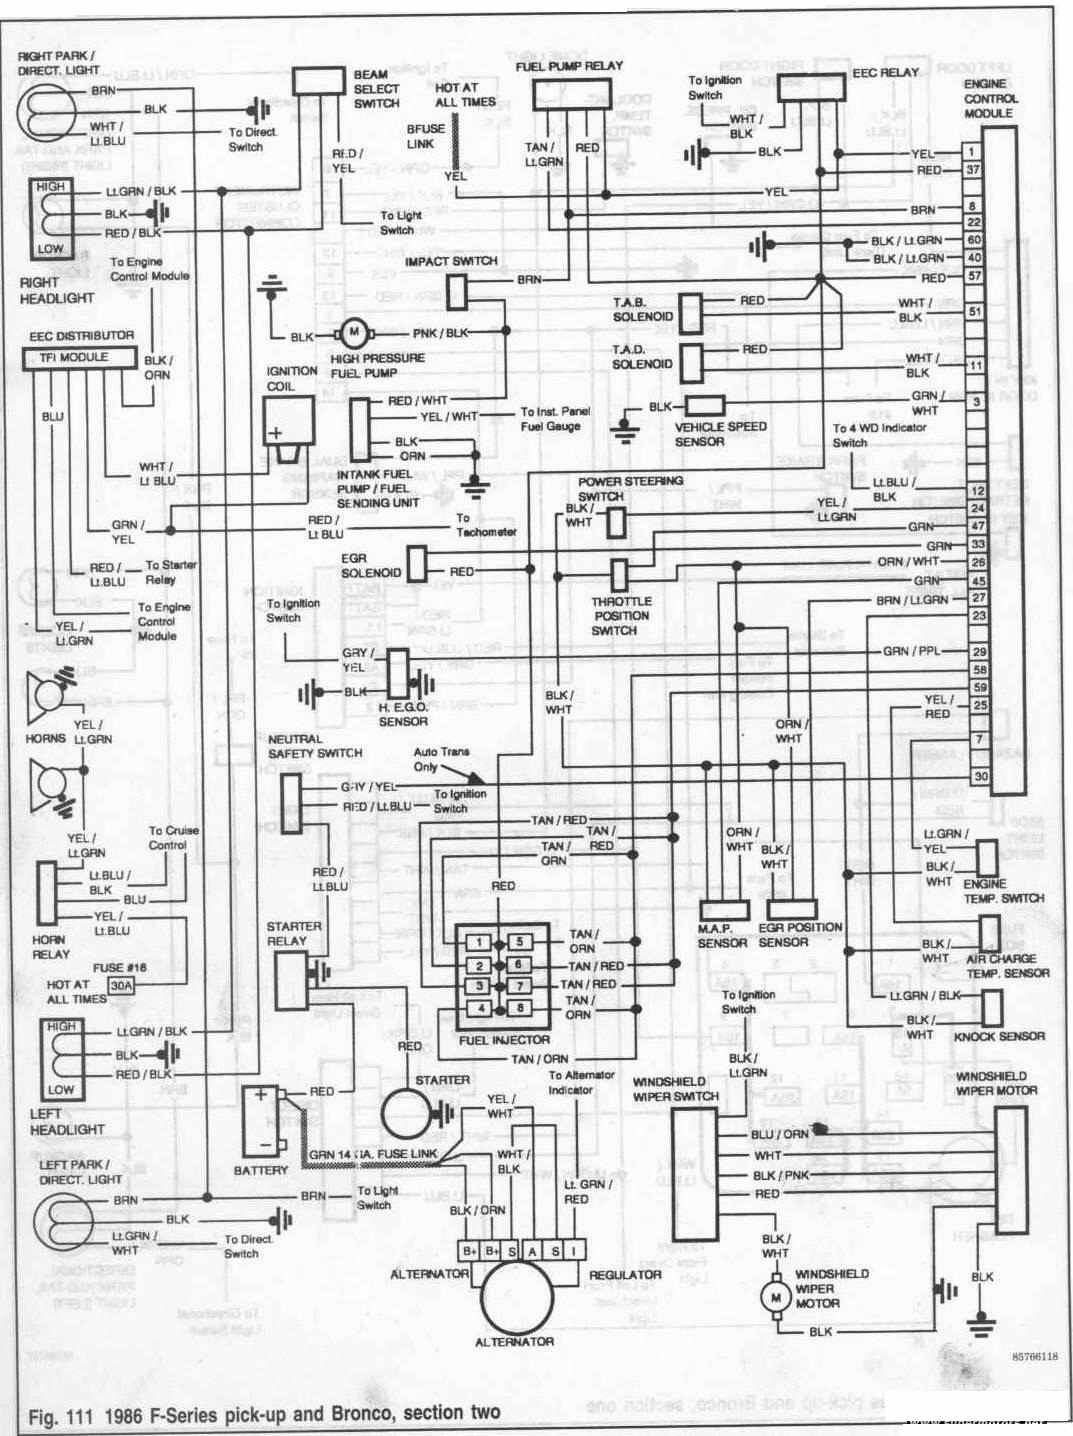 1986 Ford F250 Wiring Diagram Wiring Diagram Extend B Extend B Reteimpresesabina It